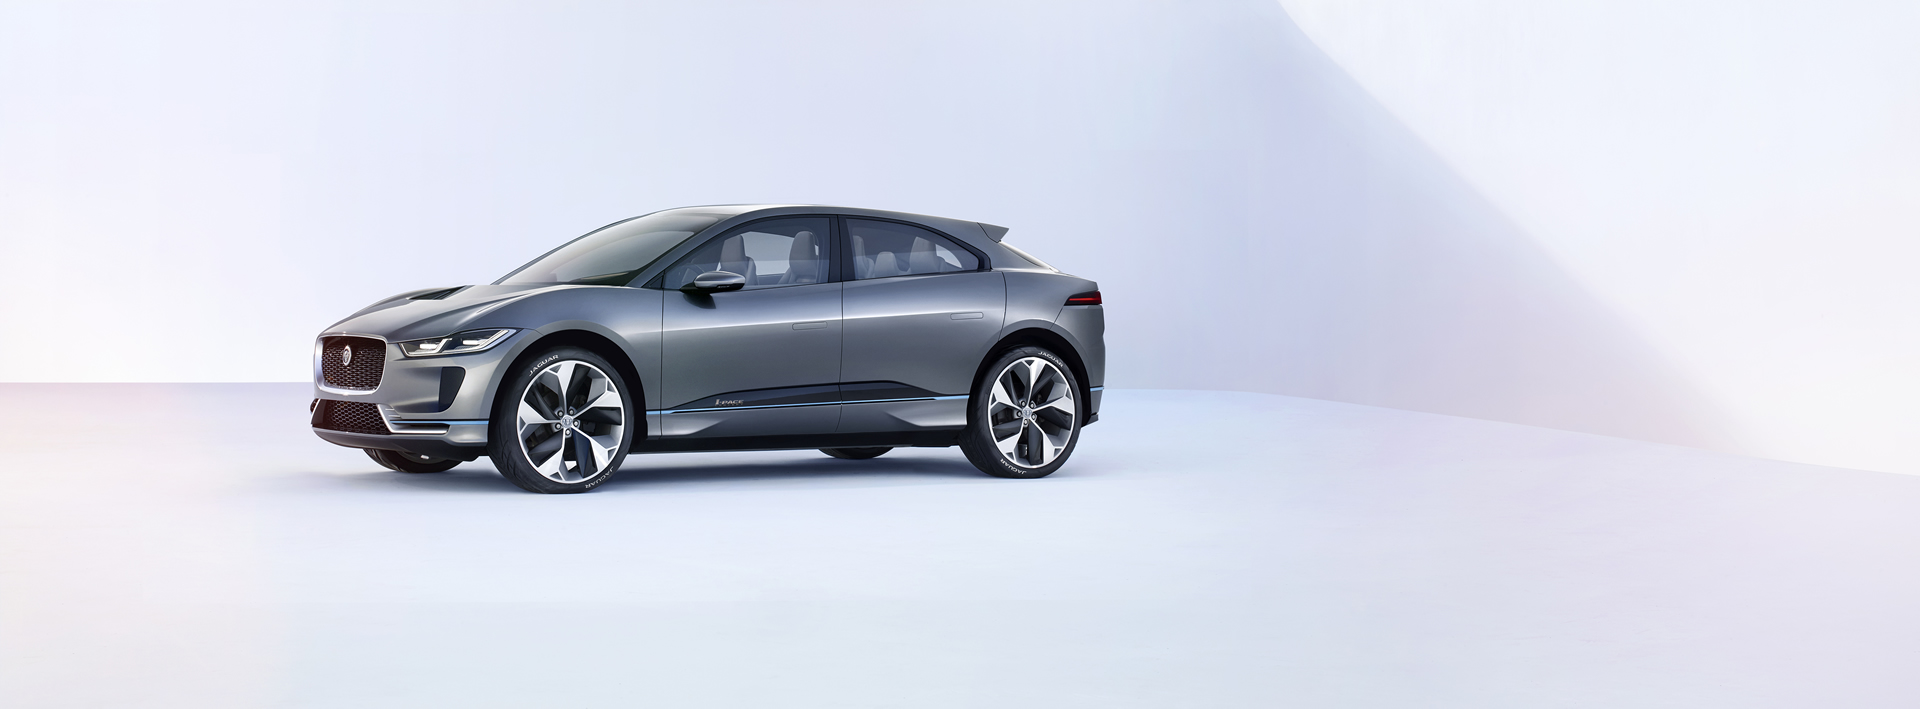 EV's are Going Mainstream: Jaguar I-Pace SUV Concept